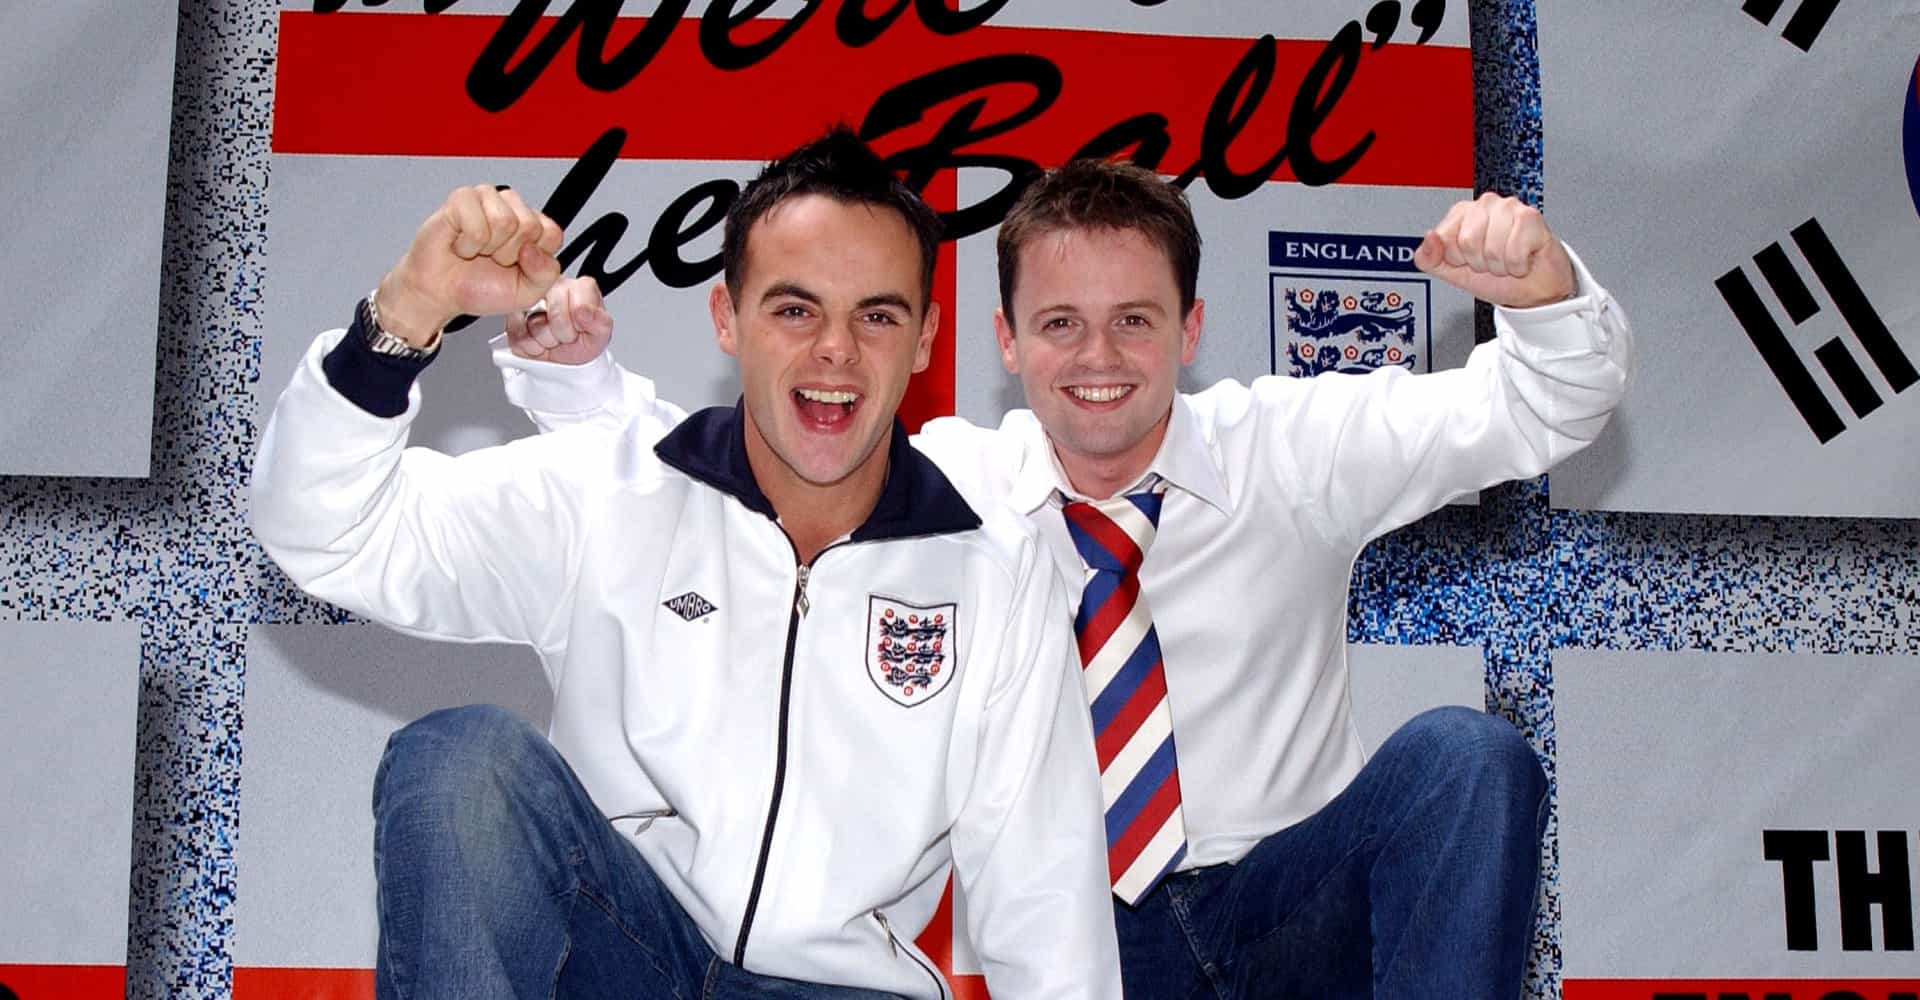 Do you remember these classic England World Cup songs?